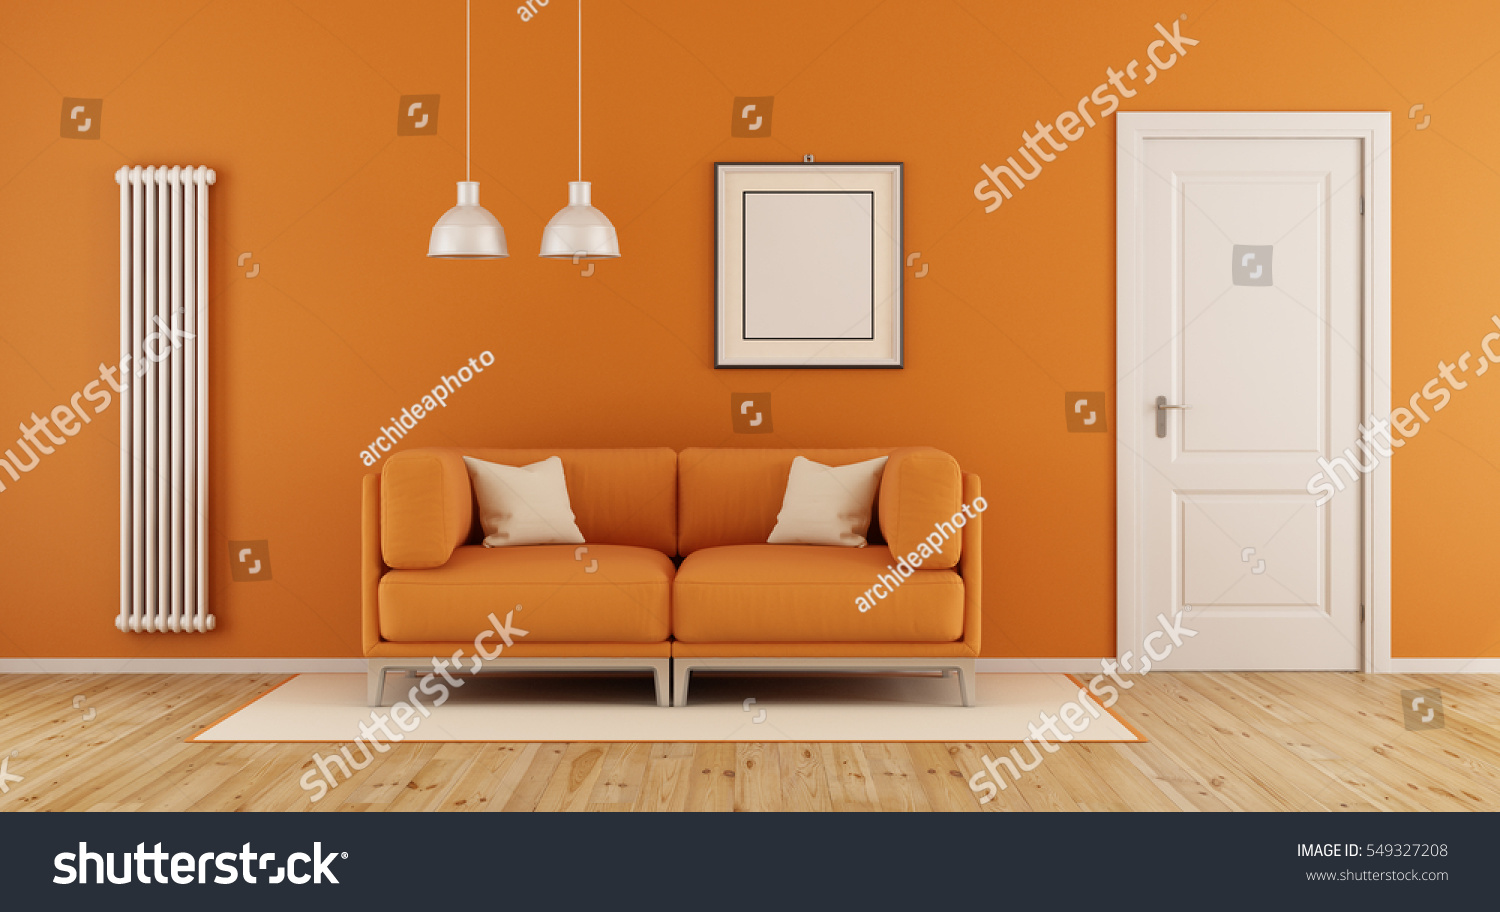 orange living room modern couchclosed door stock illustration